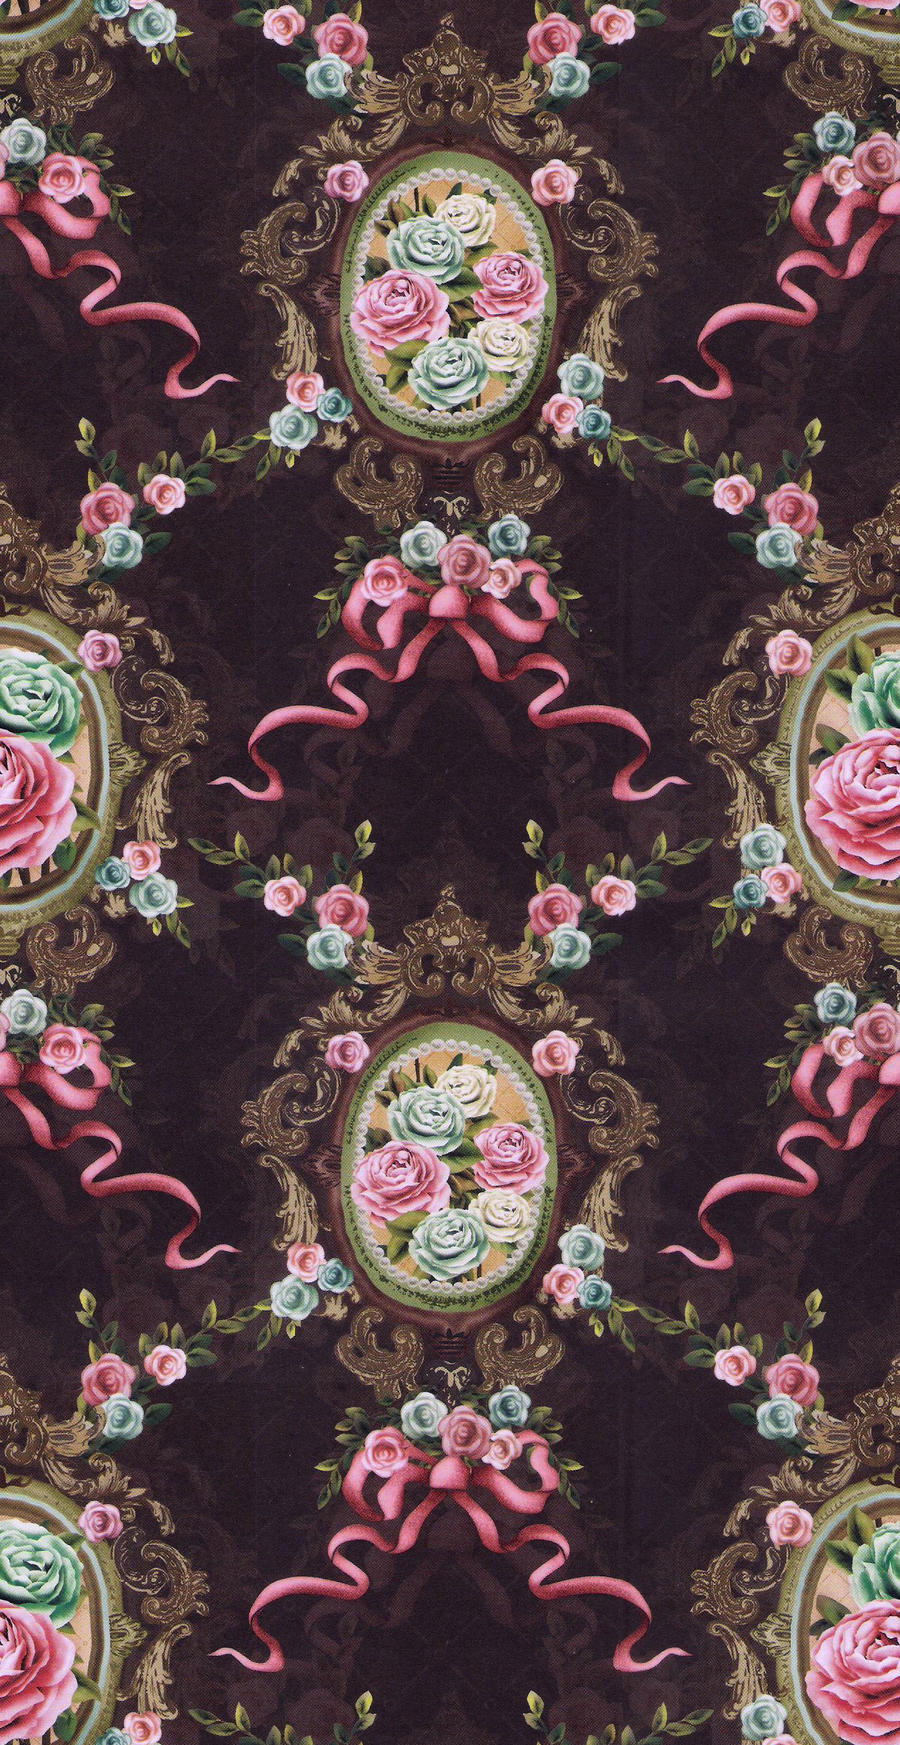 tileable rose cameo